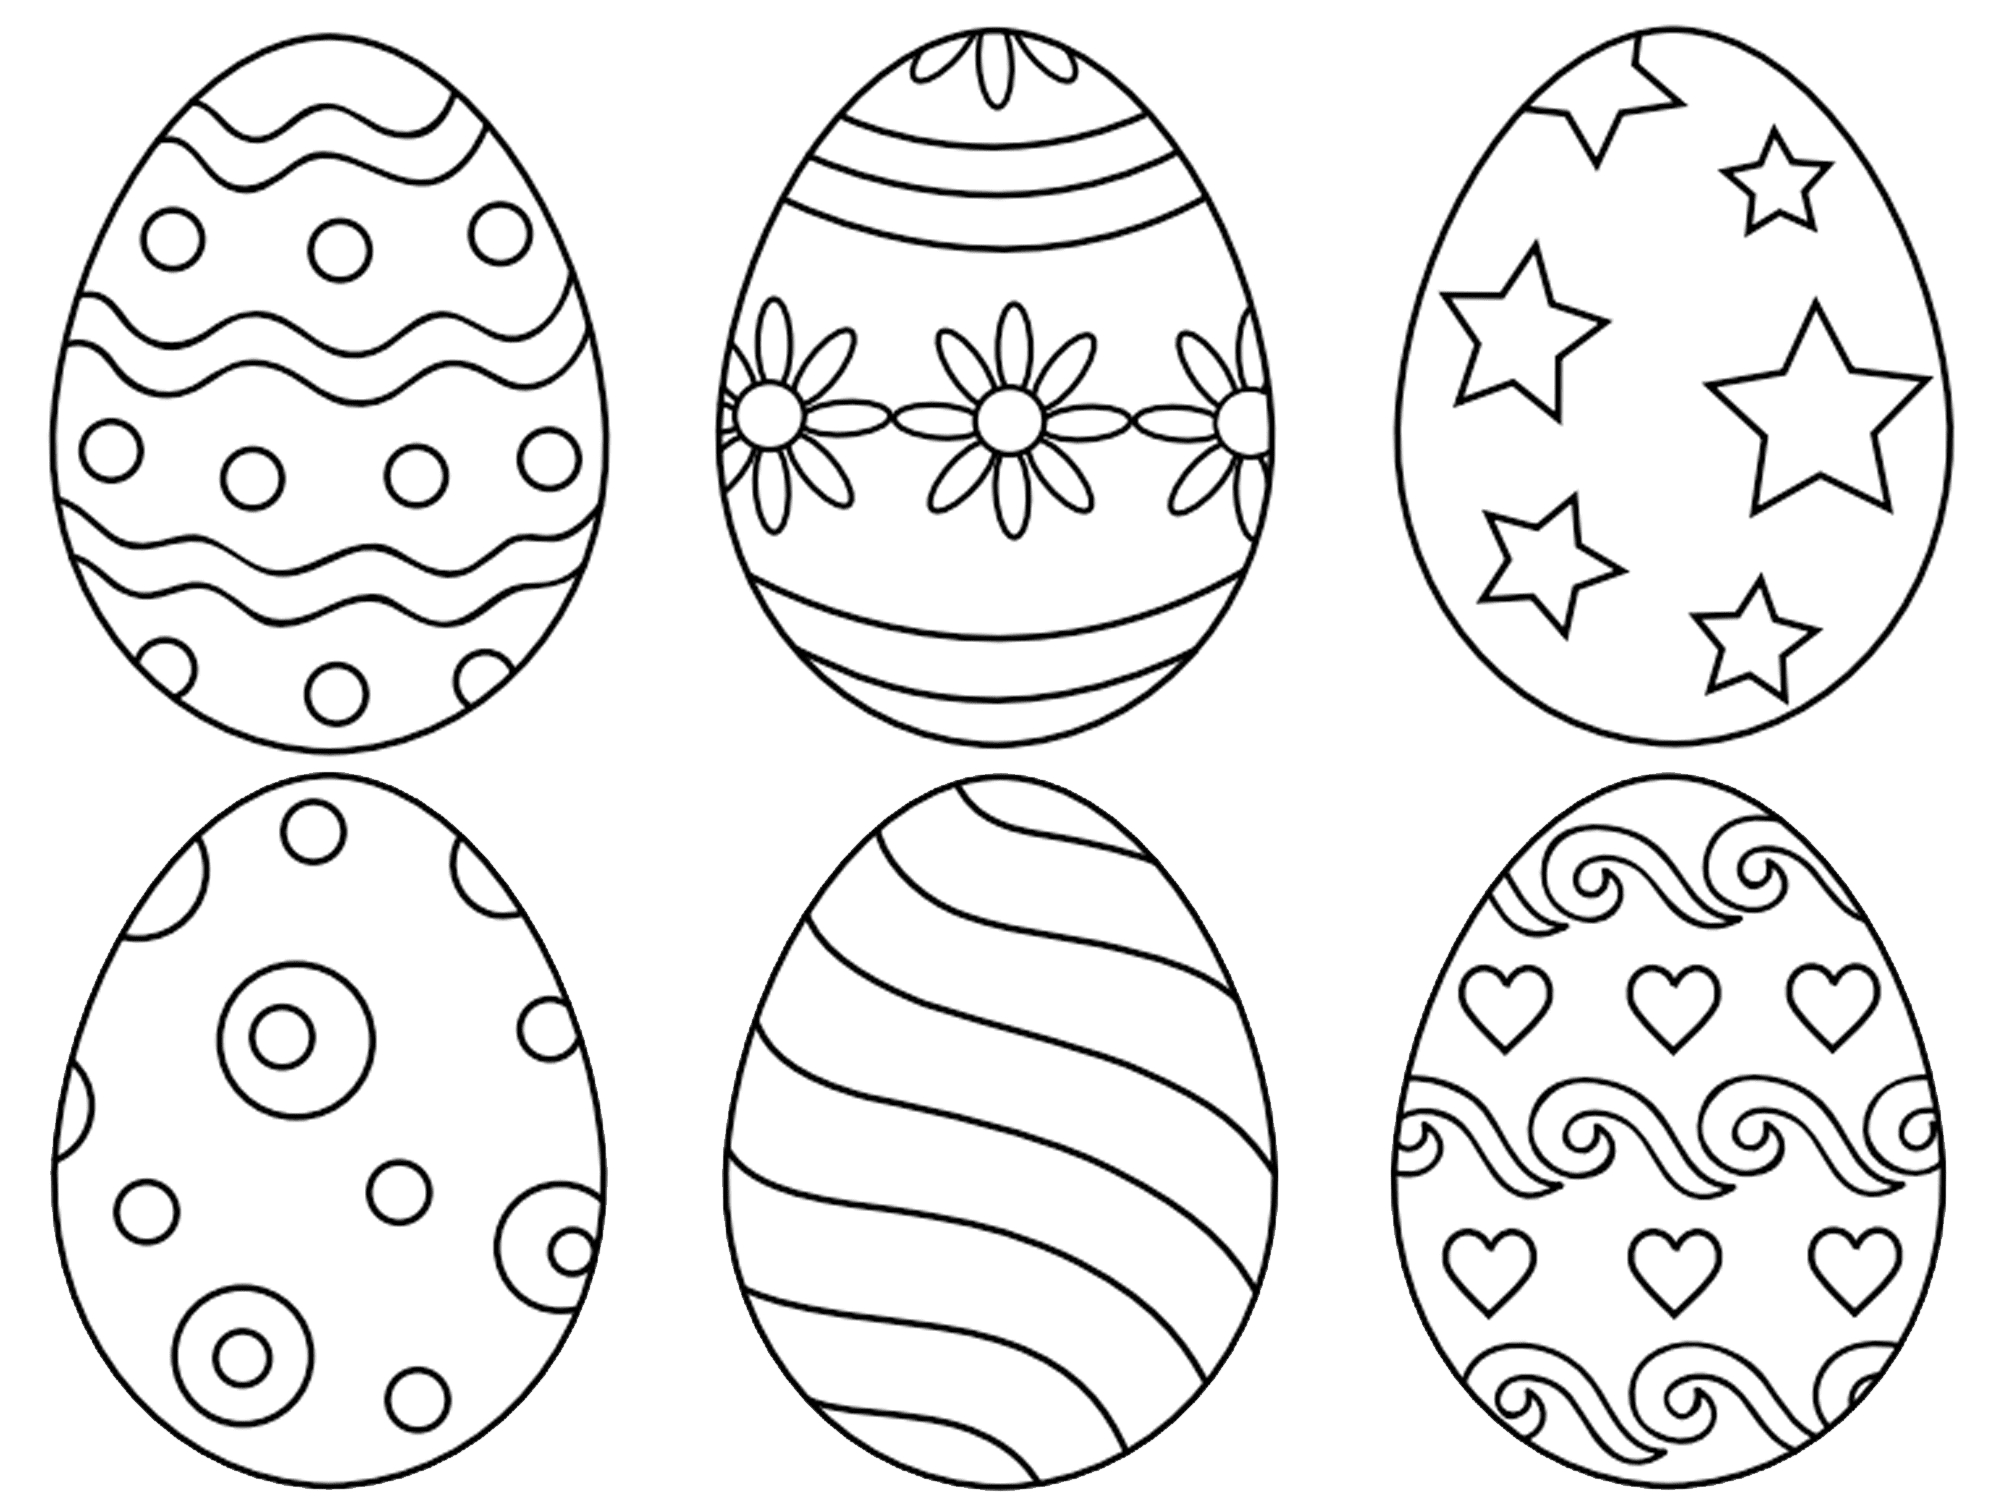 Easter Egg Hunt Clues With Free Printable In